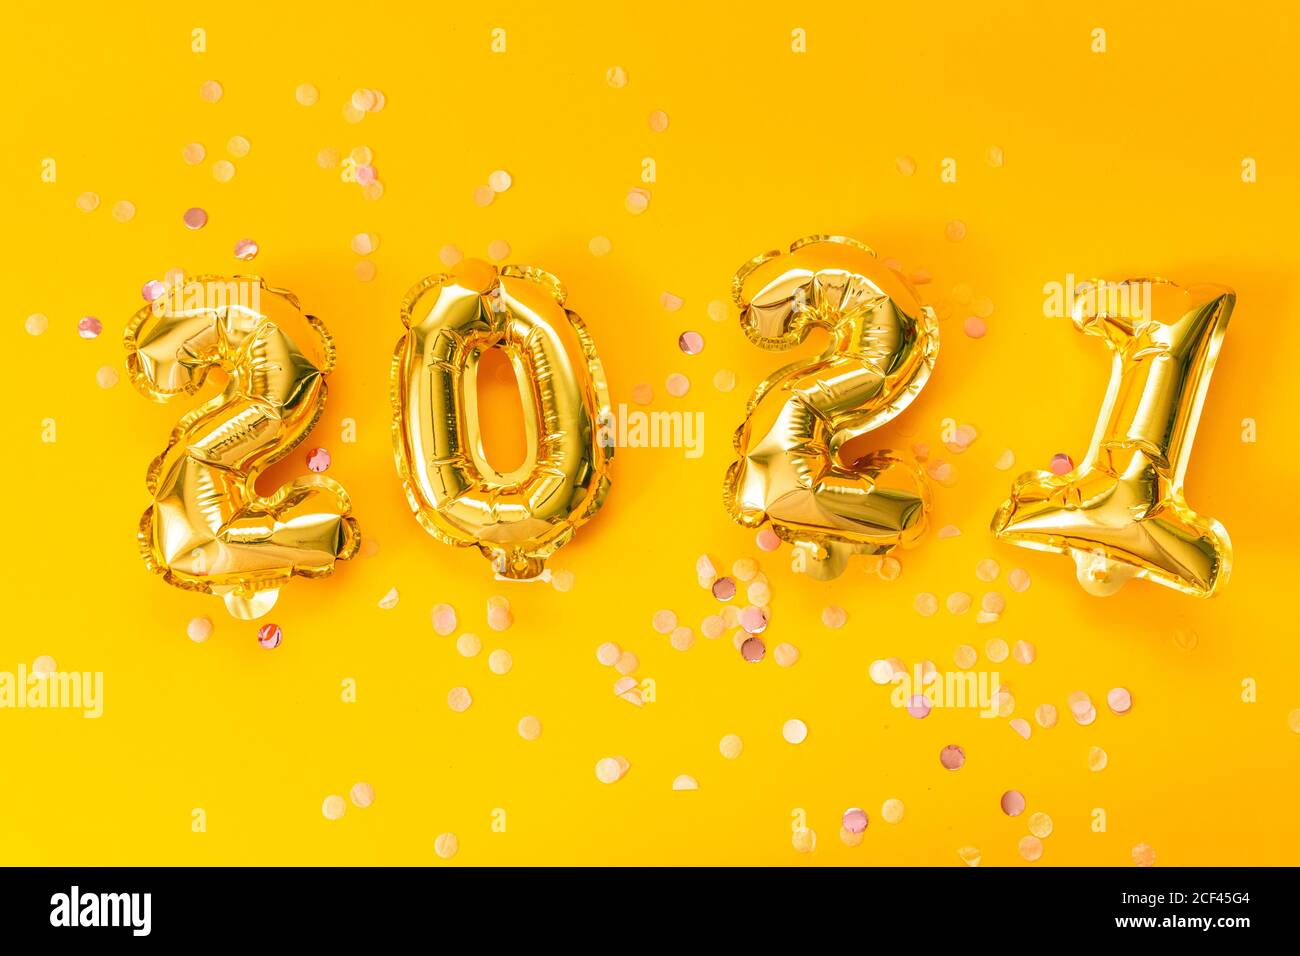 Happy New Year 11 High Resolution Stock Photography and Images